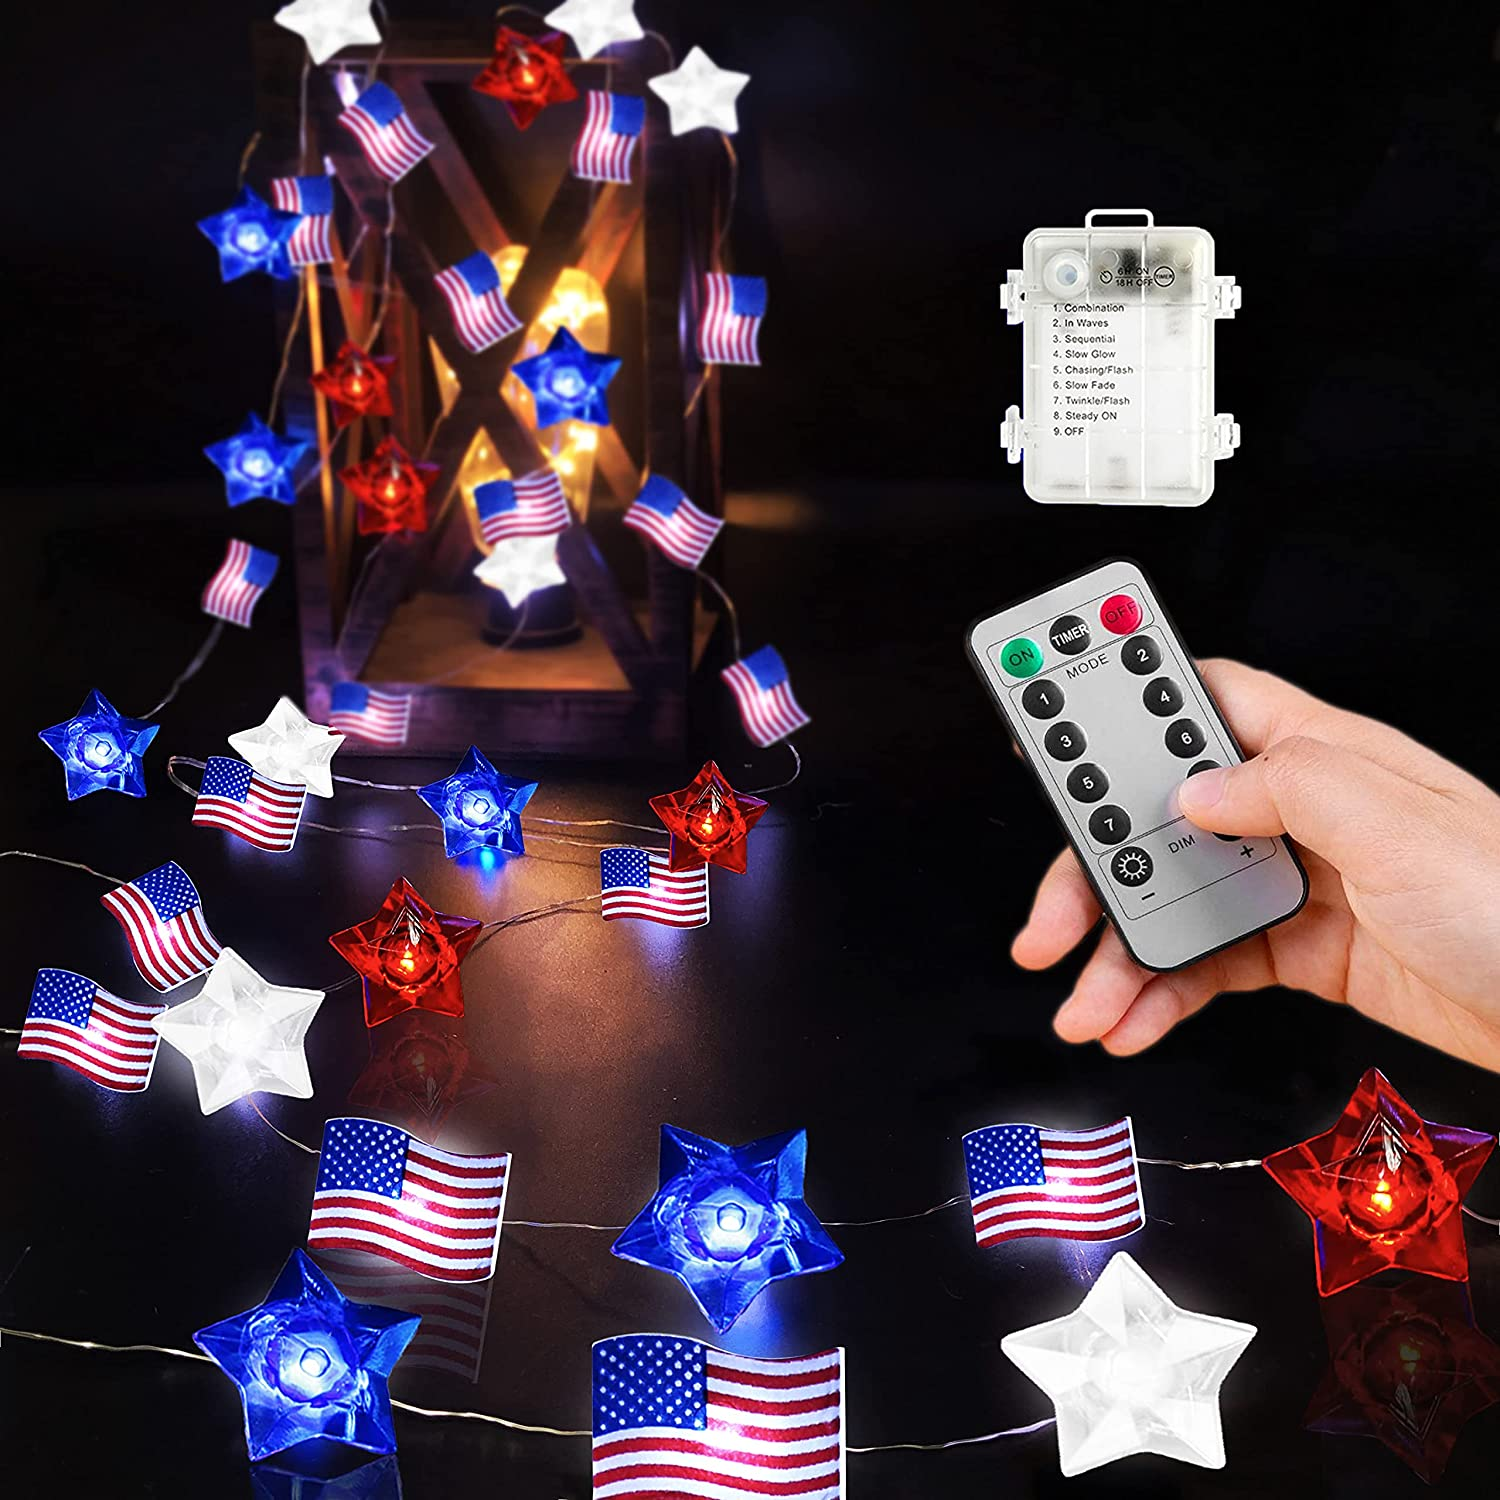 Ucutely Independence Day Decor Lights,13FT 40LED American Flag String Lights,Red White Blue Star Lights with Remote Control, Pefect for Memorial Day, 4th of July, Independence Day